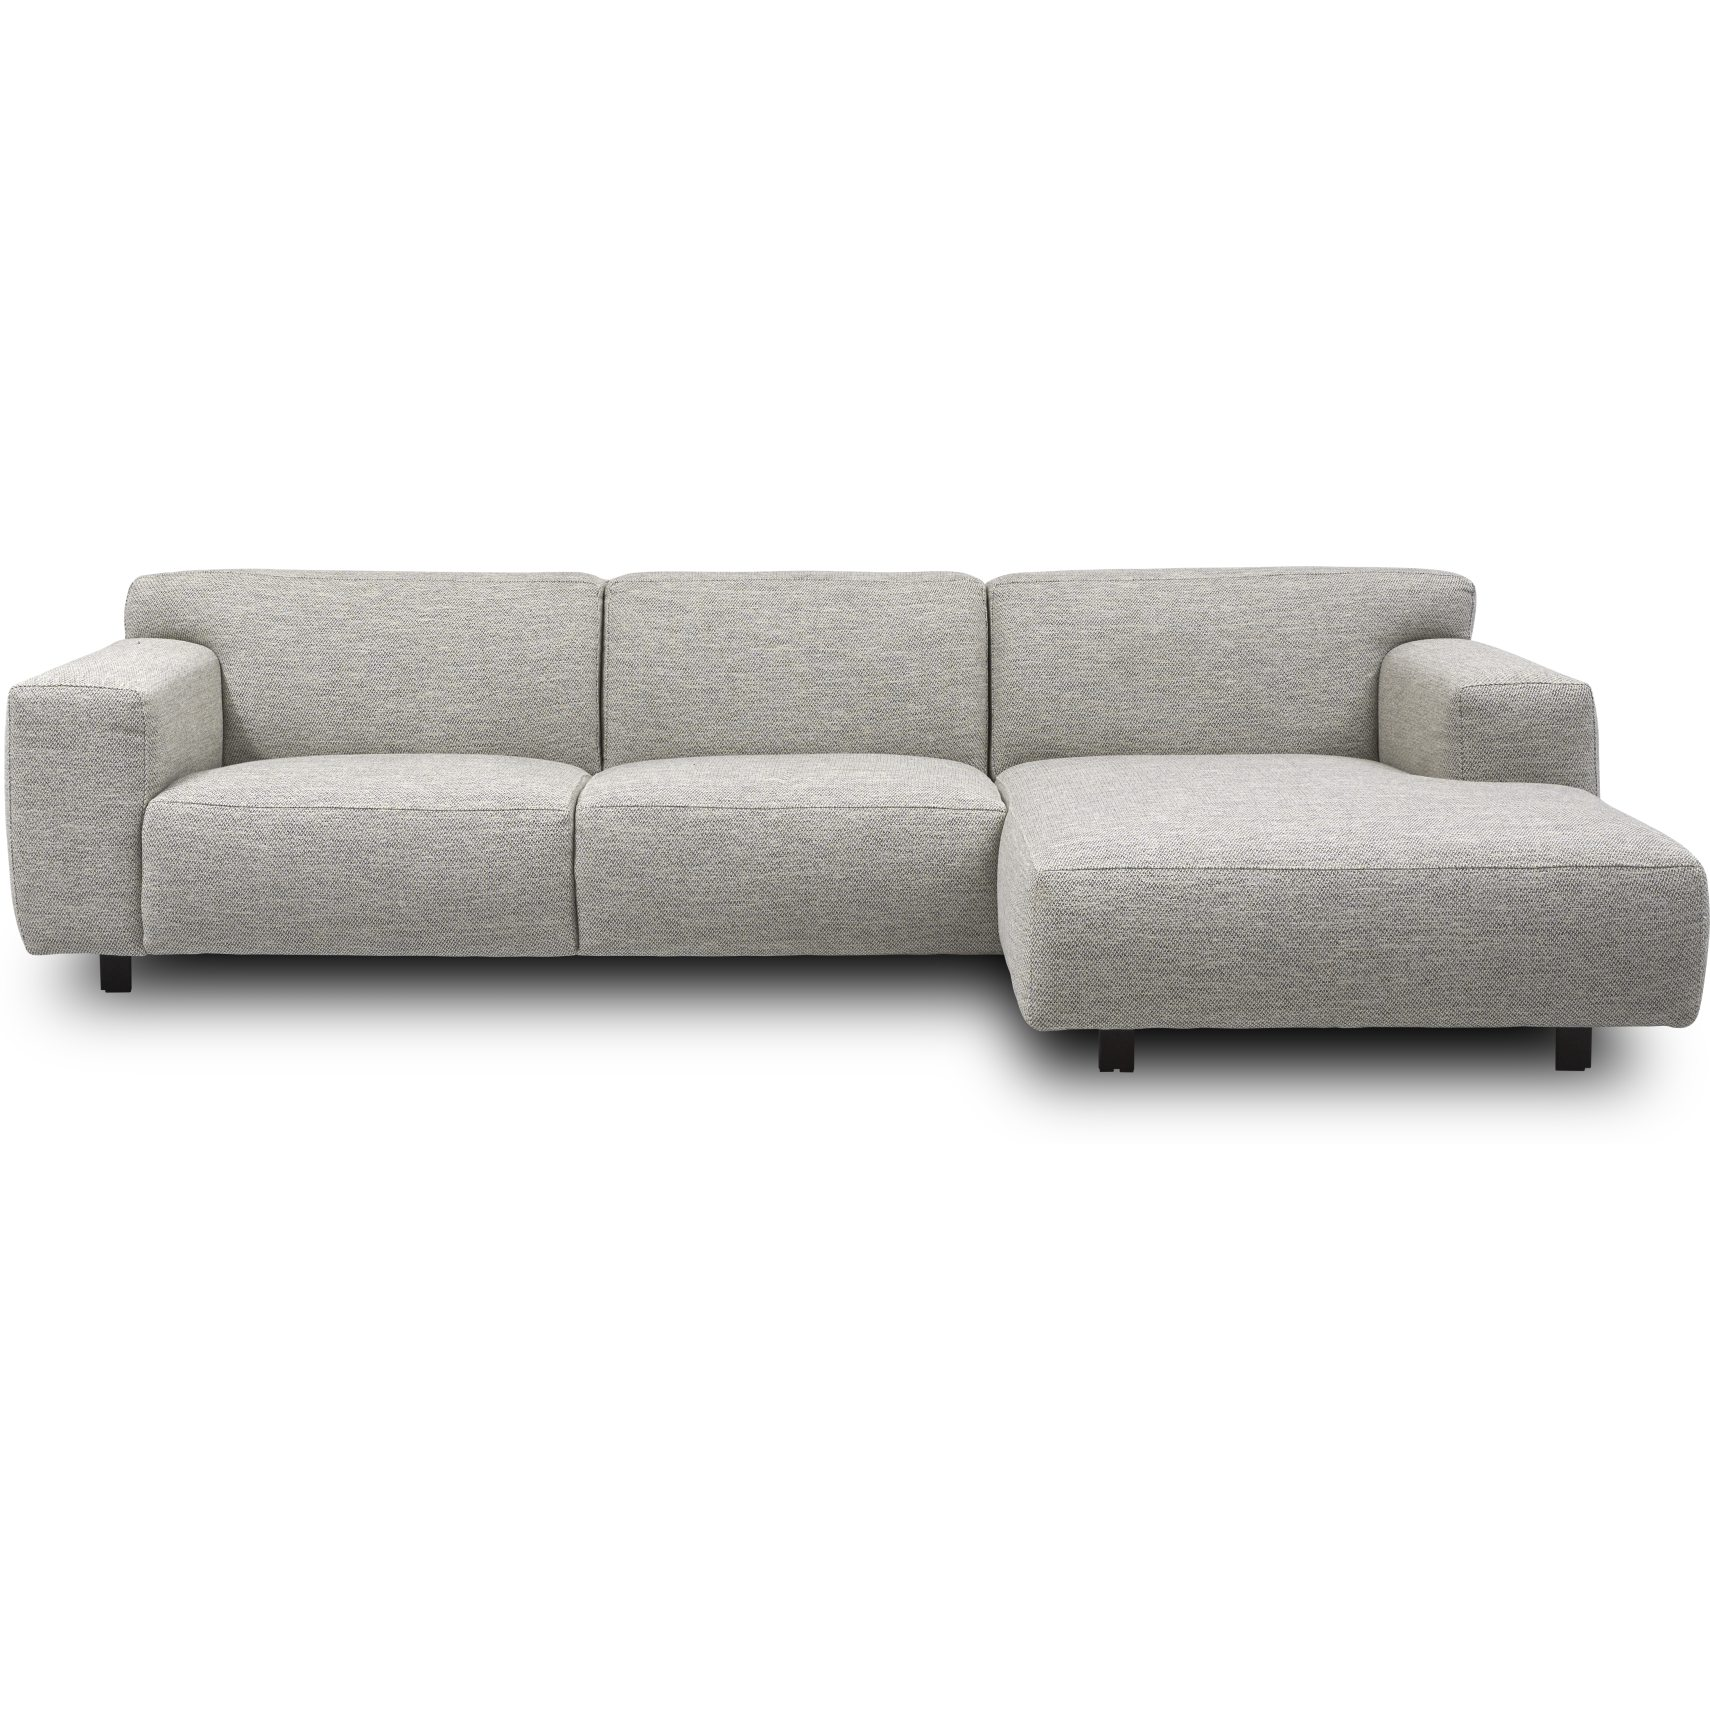 Picture of: Siena Sofa Med Chaiselong Dvd4sale